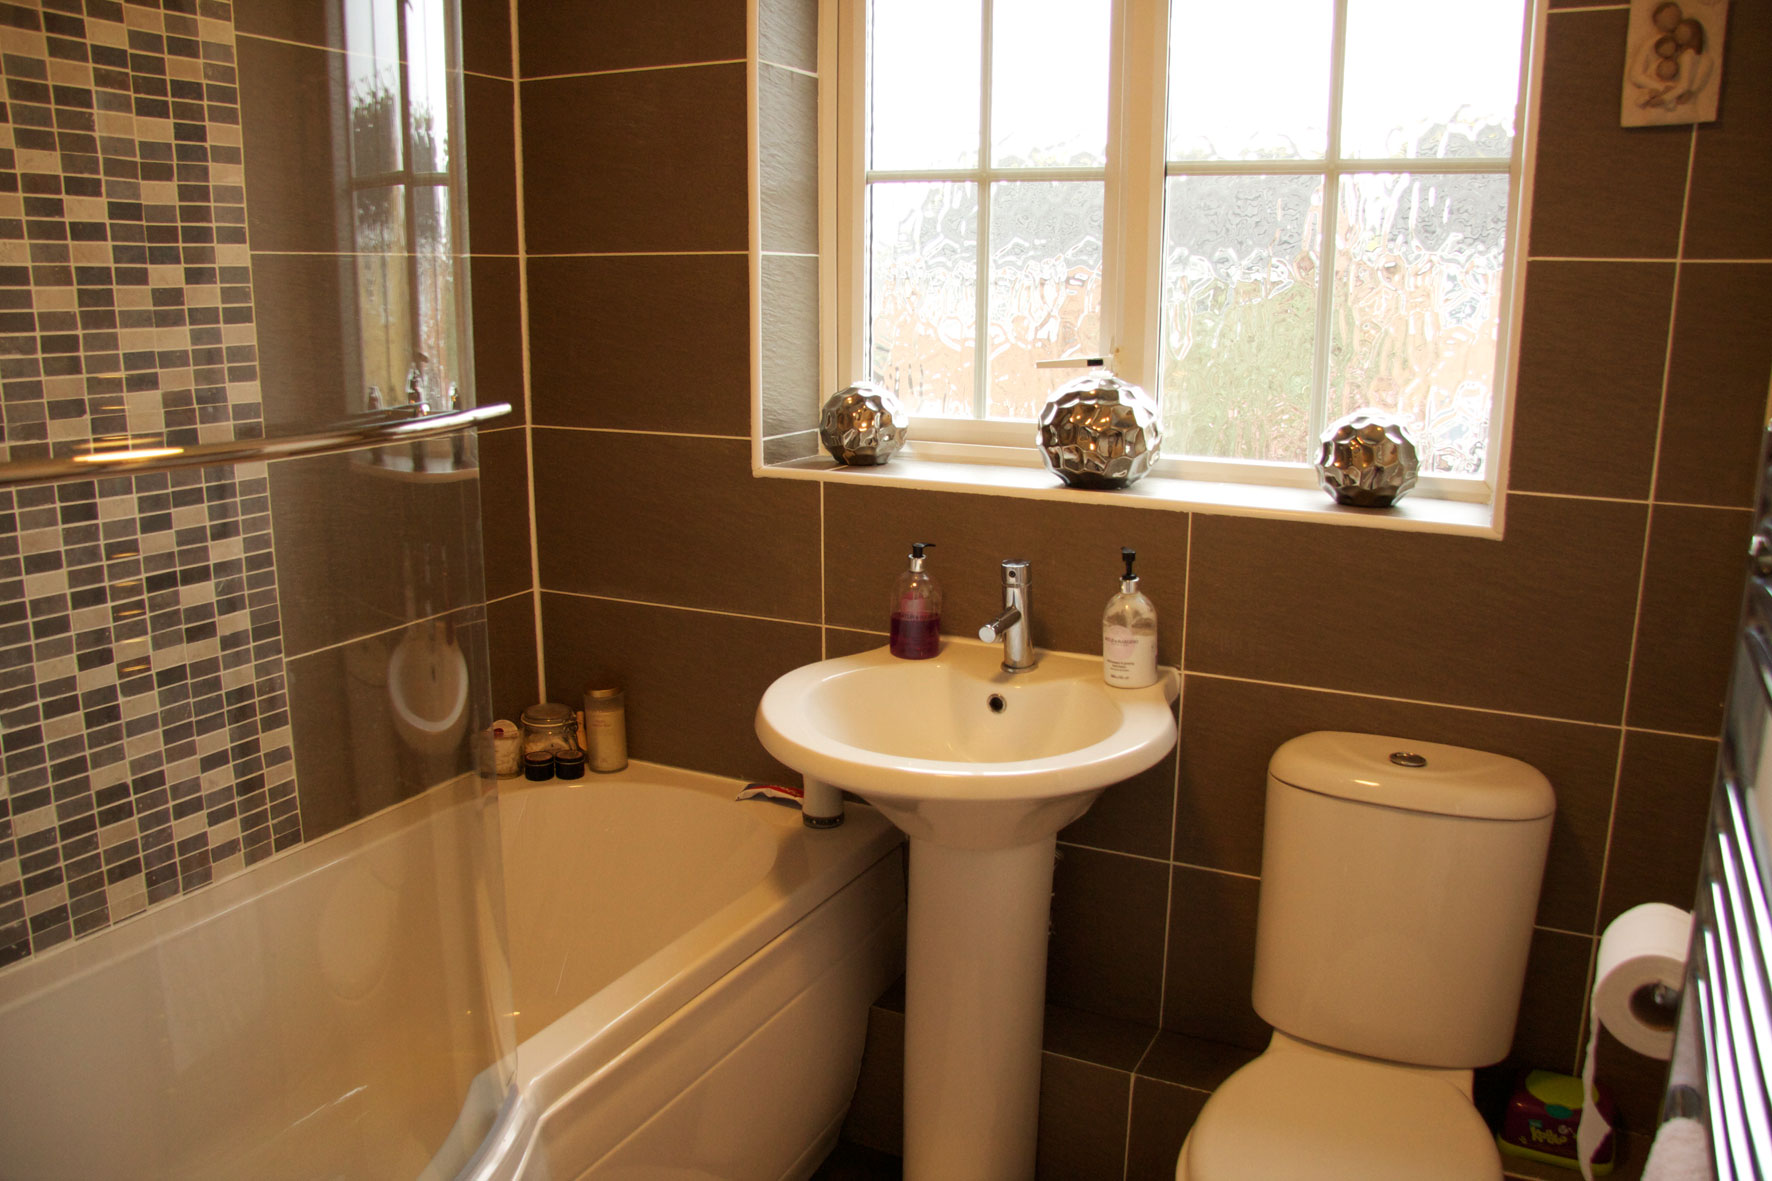 Work ac homeworks northampton based home improvements for New style bathroom